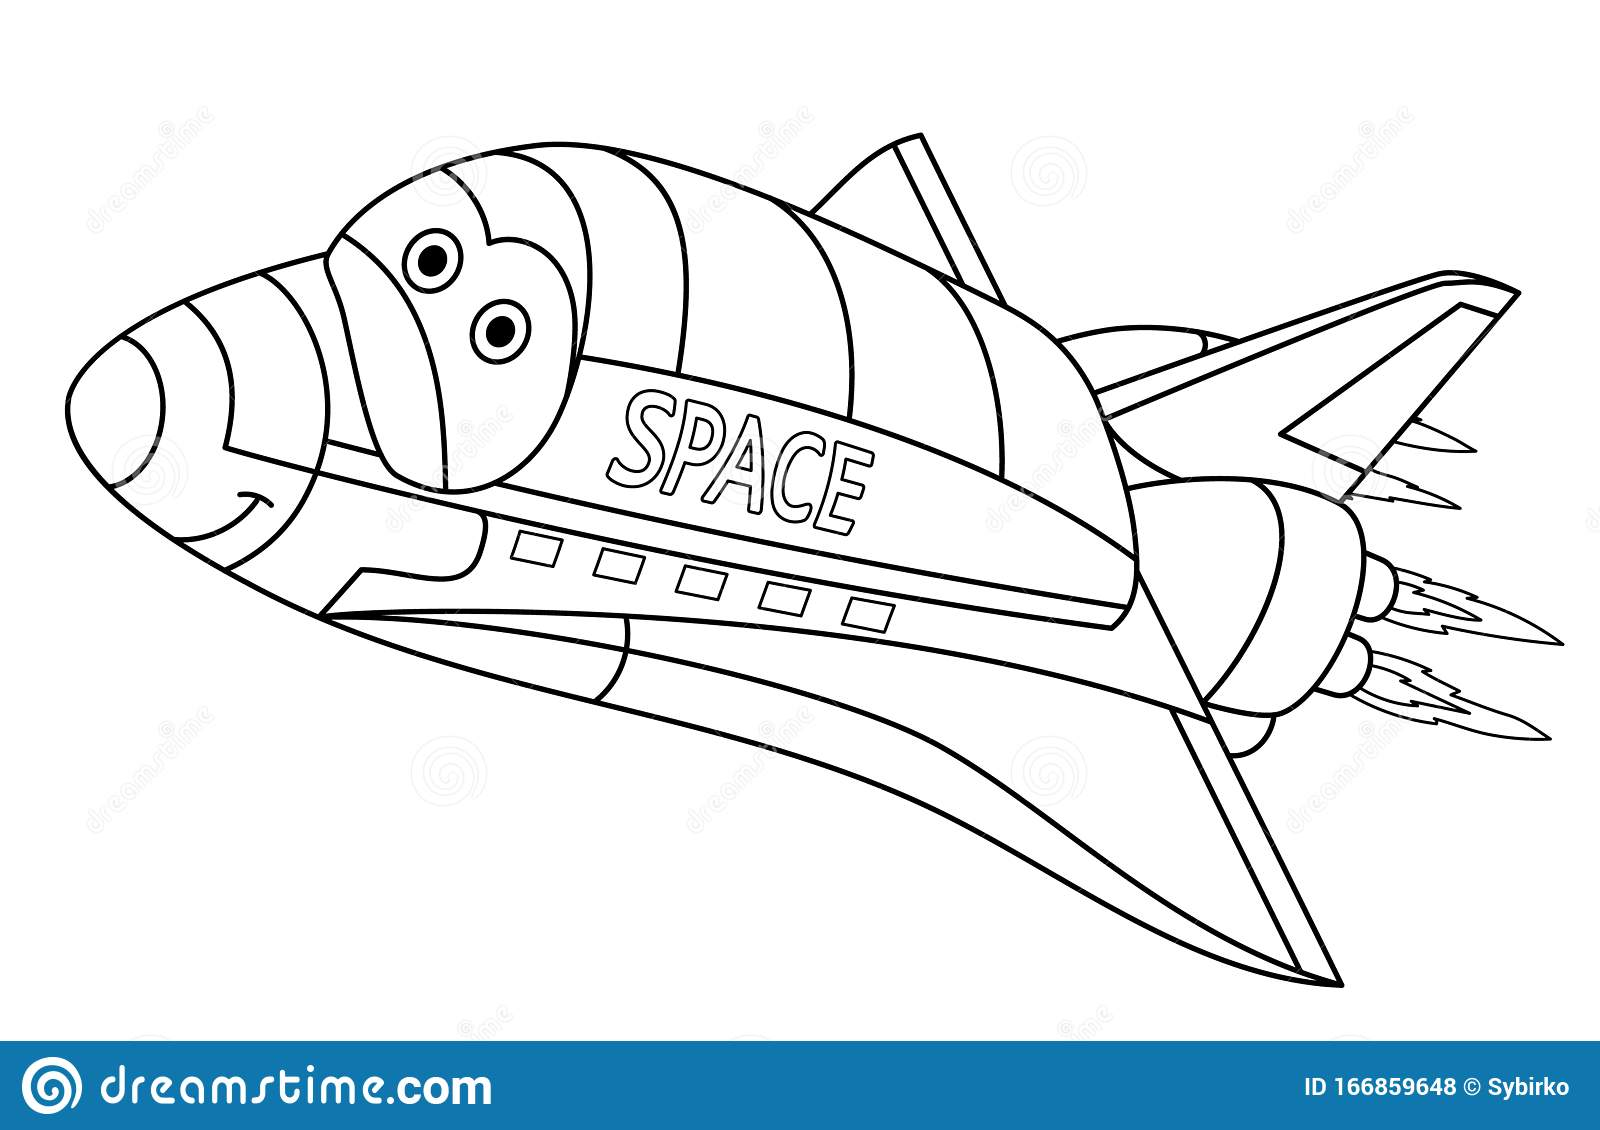 Space Shuttle Coloring Page Stock Illustrations – 18 Space ...